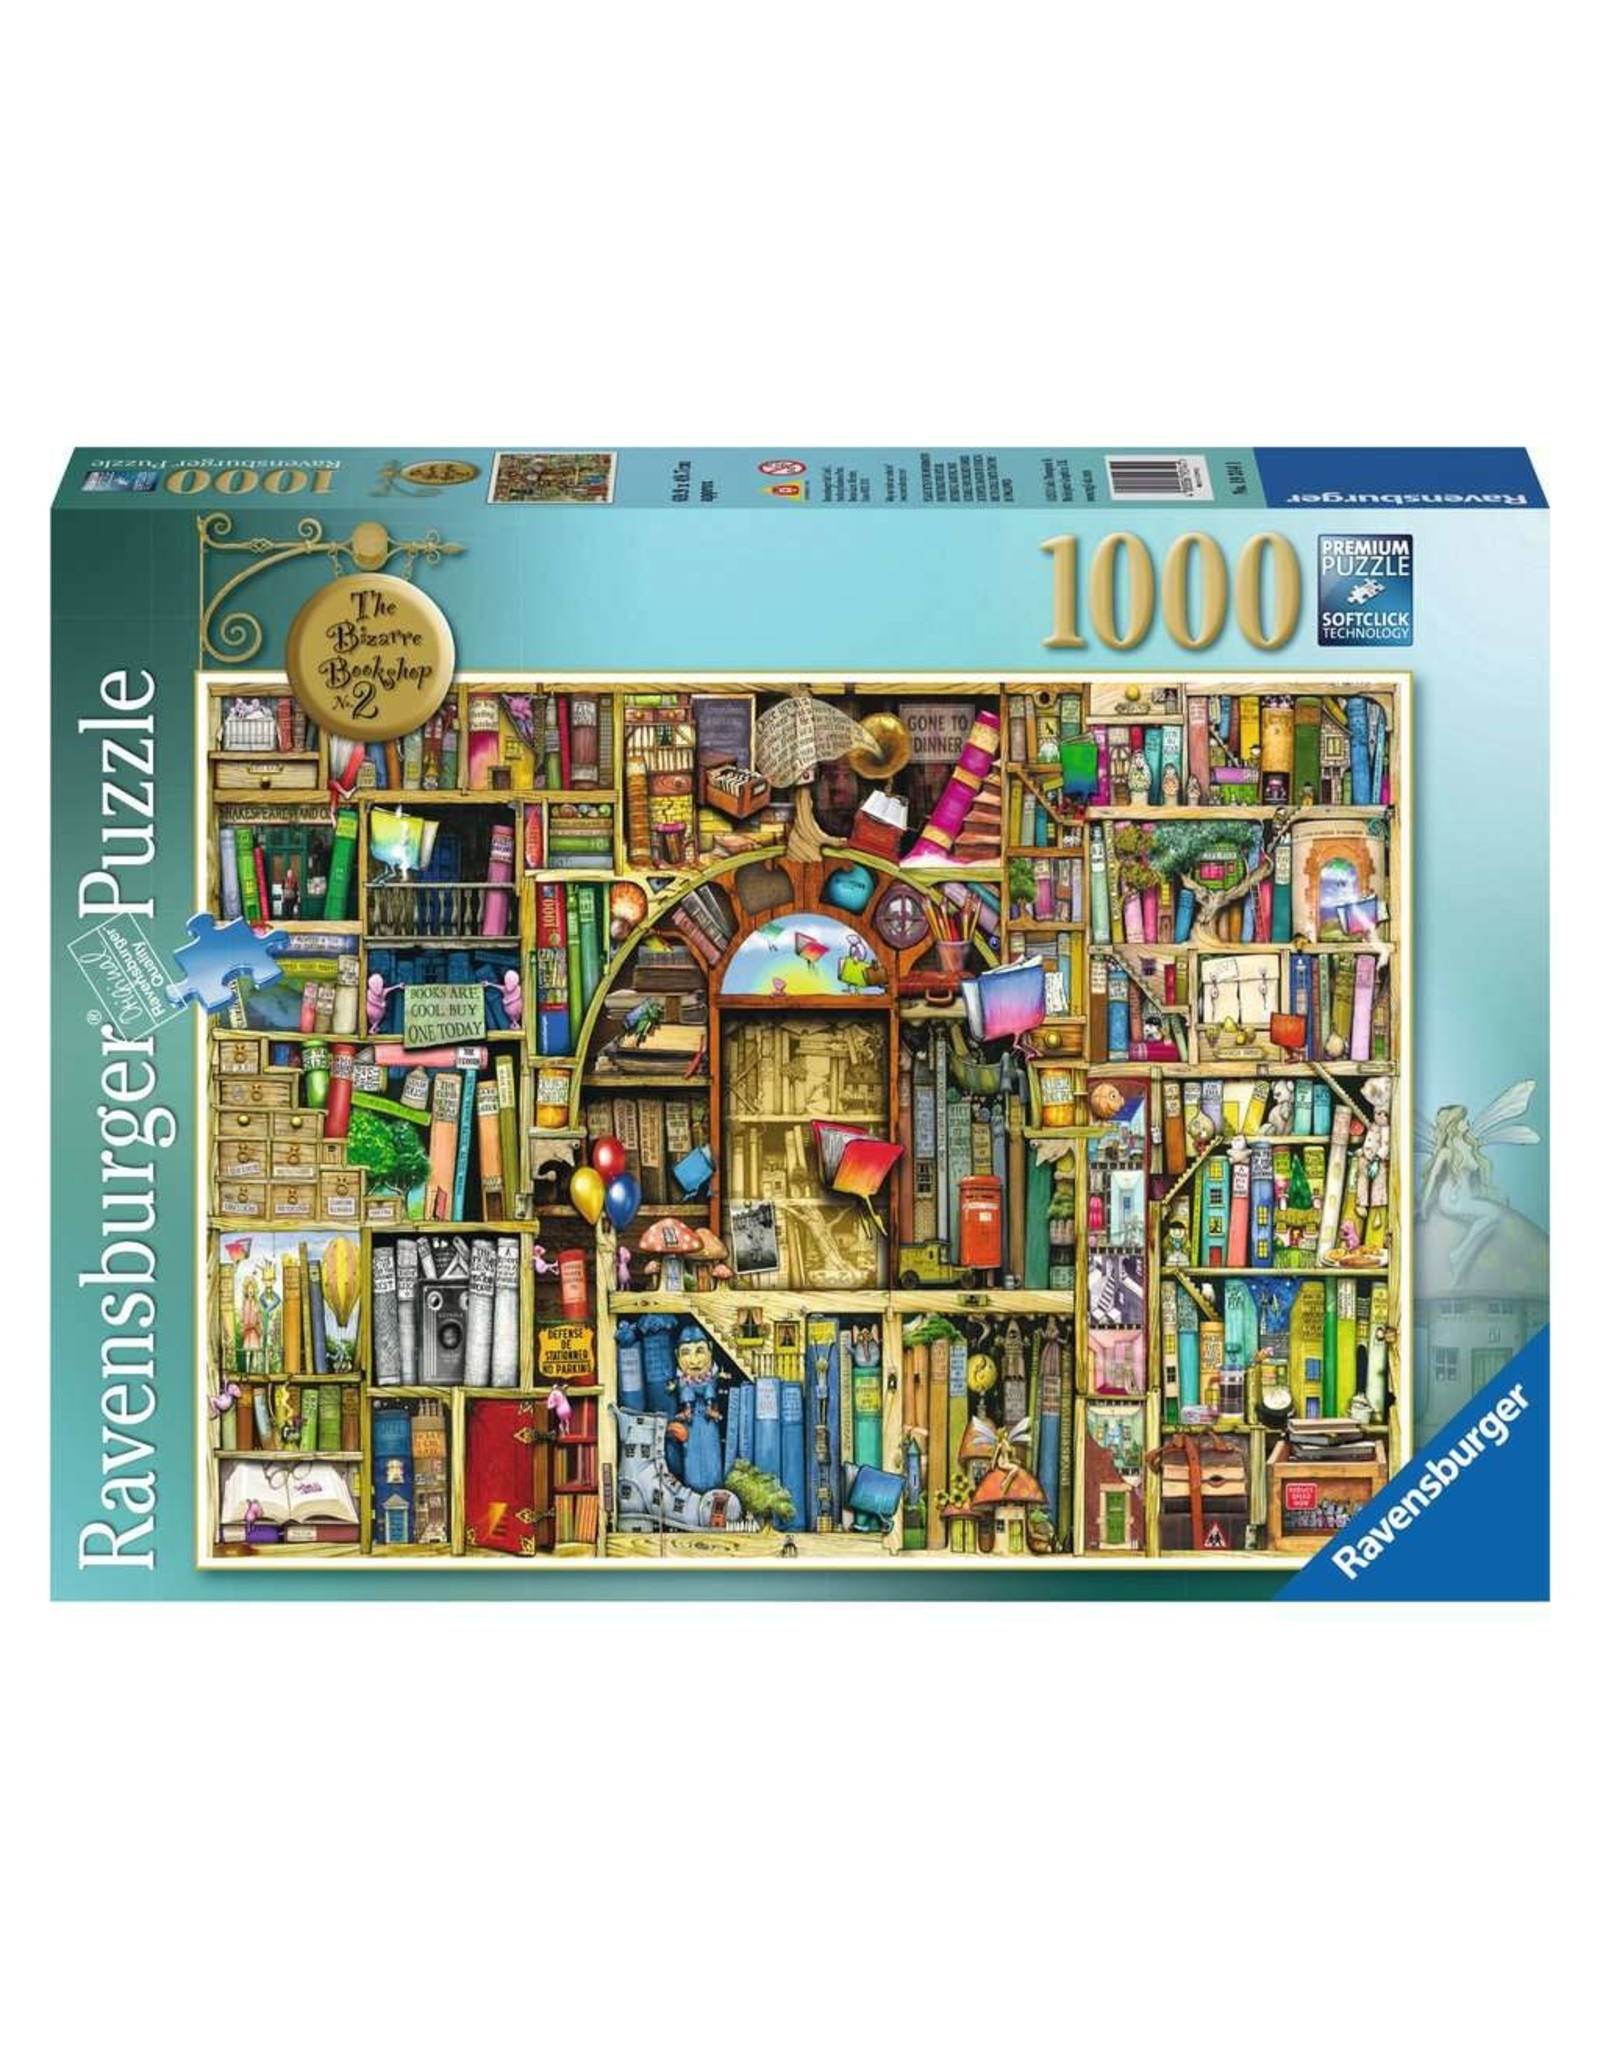 Ravensburger The Bizarre Bookshop 2 1000pc Puzzle